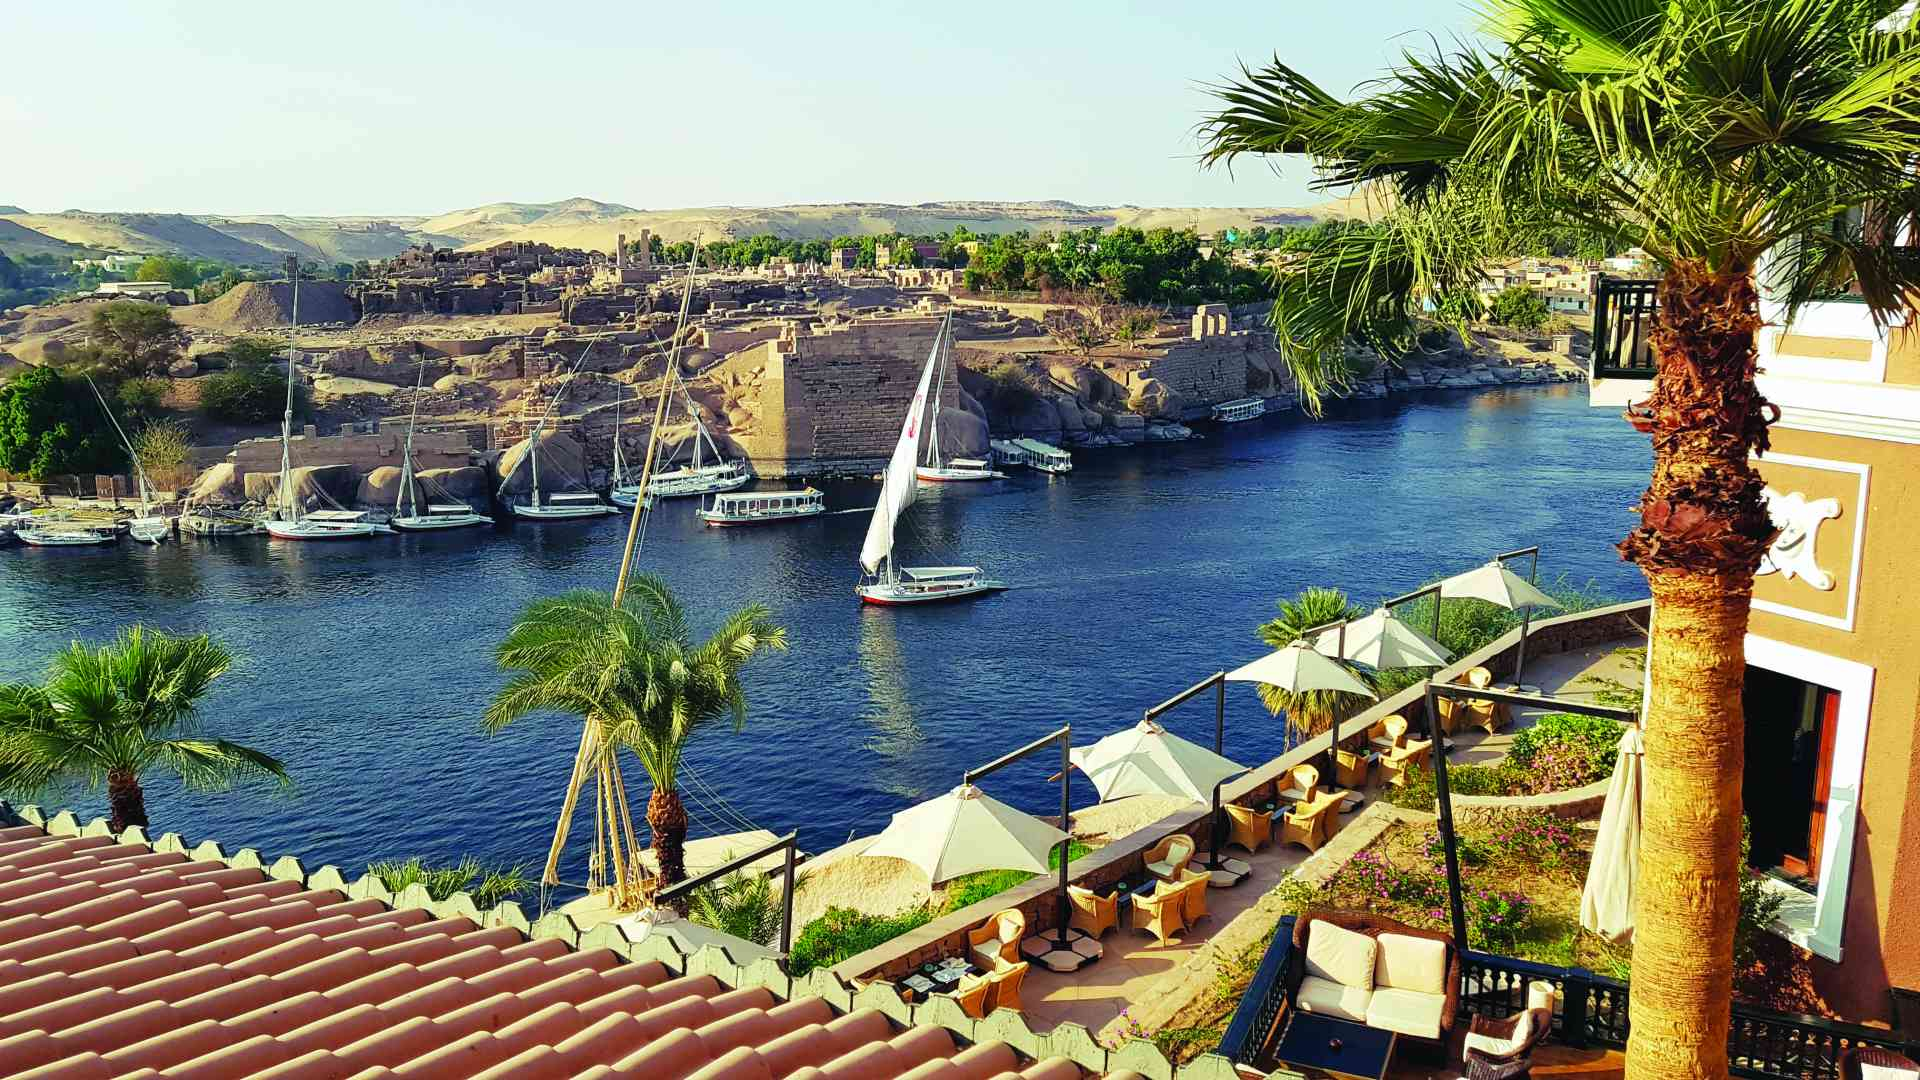 View over the Nile at the Old Cataract Hotel, Egypt